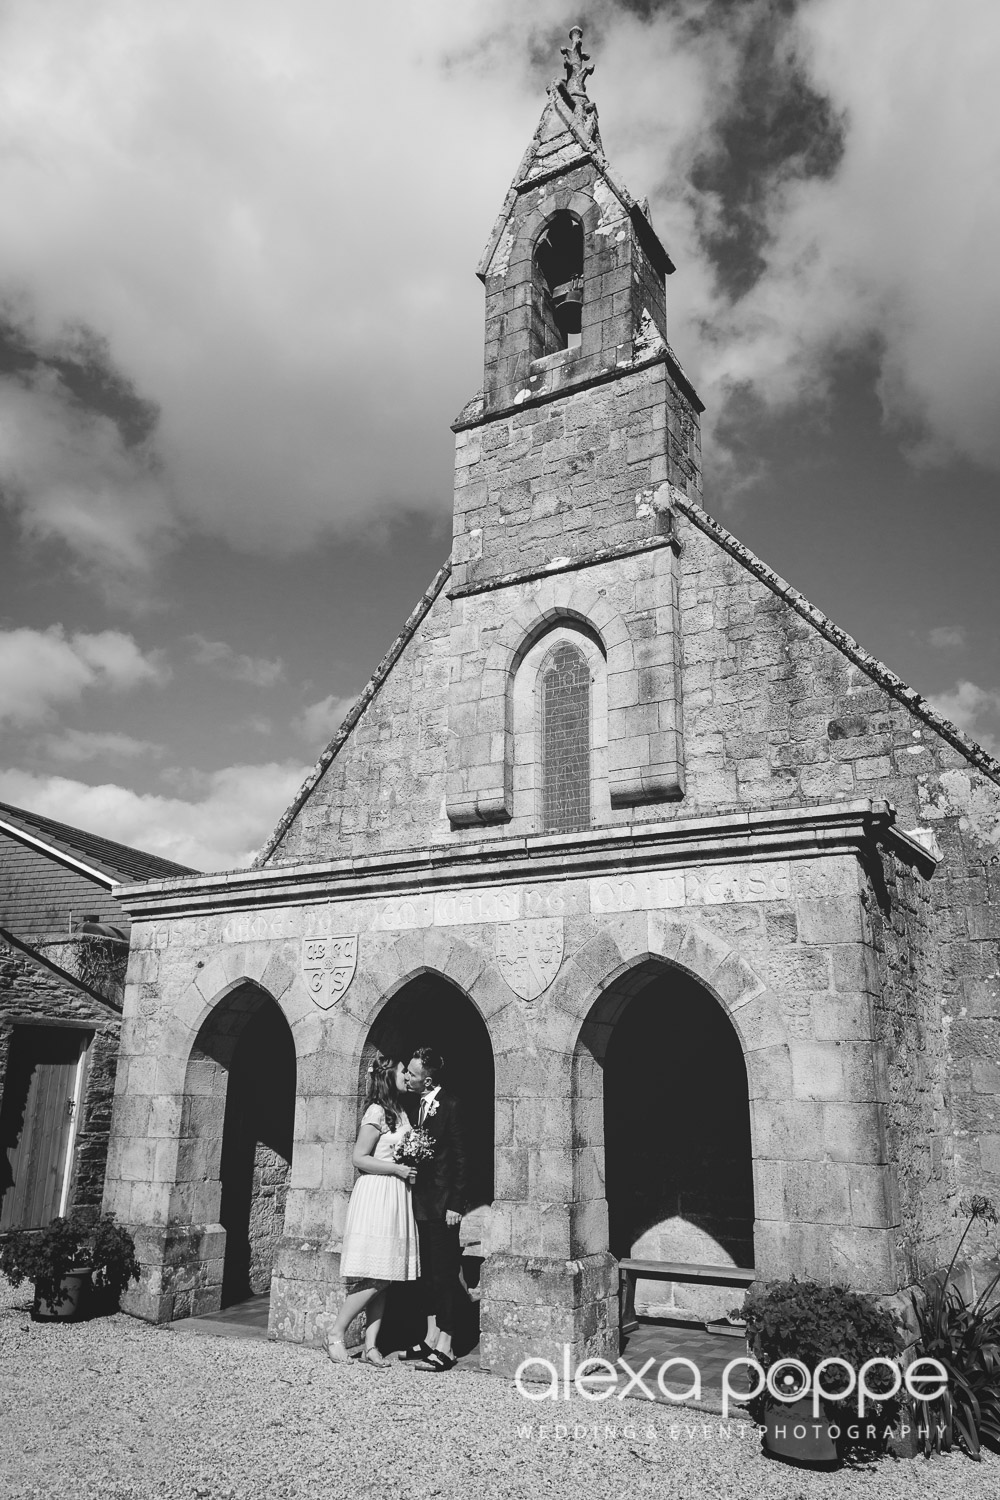 VJ_wedding_cornwall-51.jpg